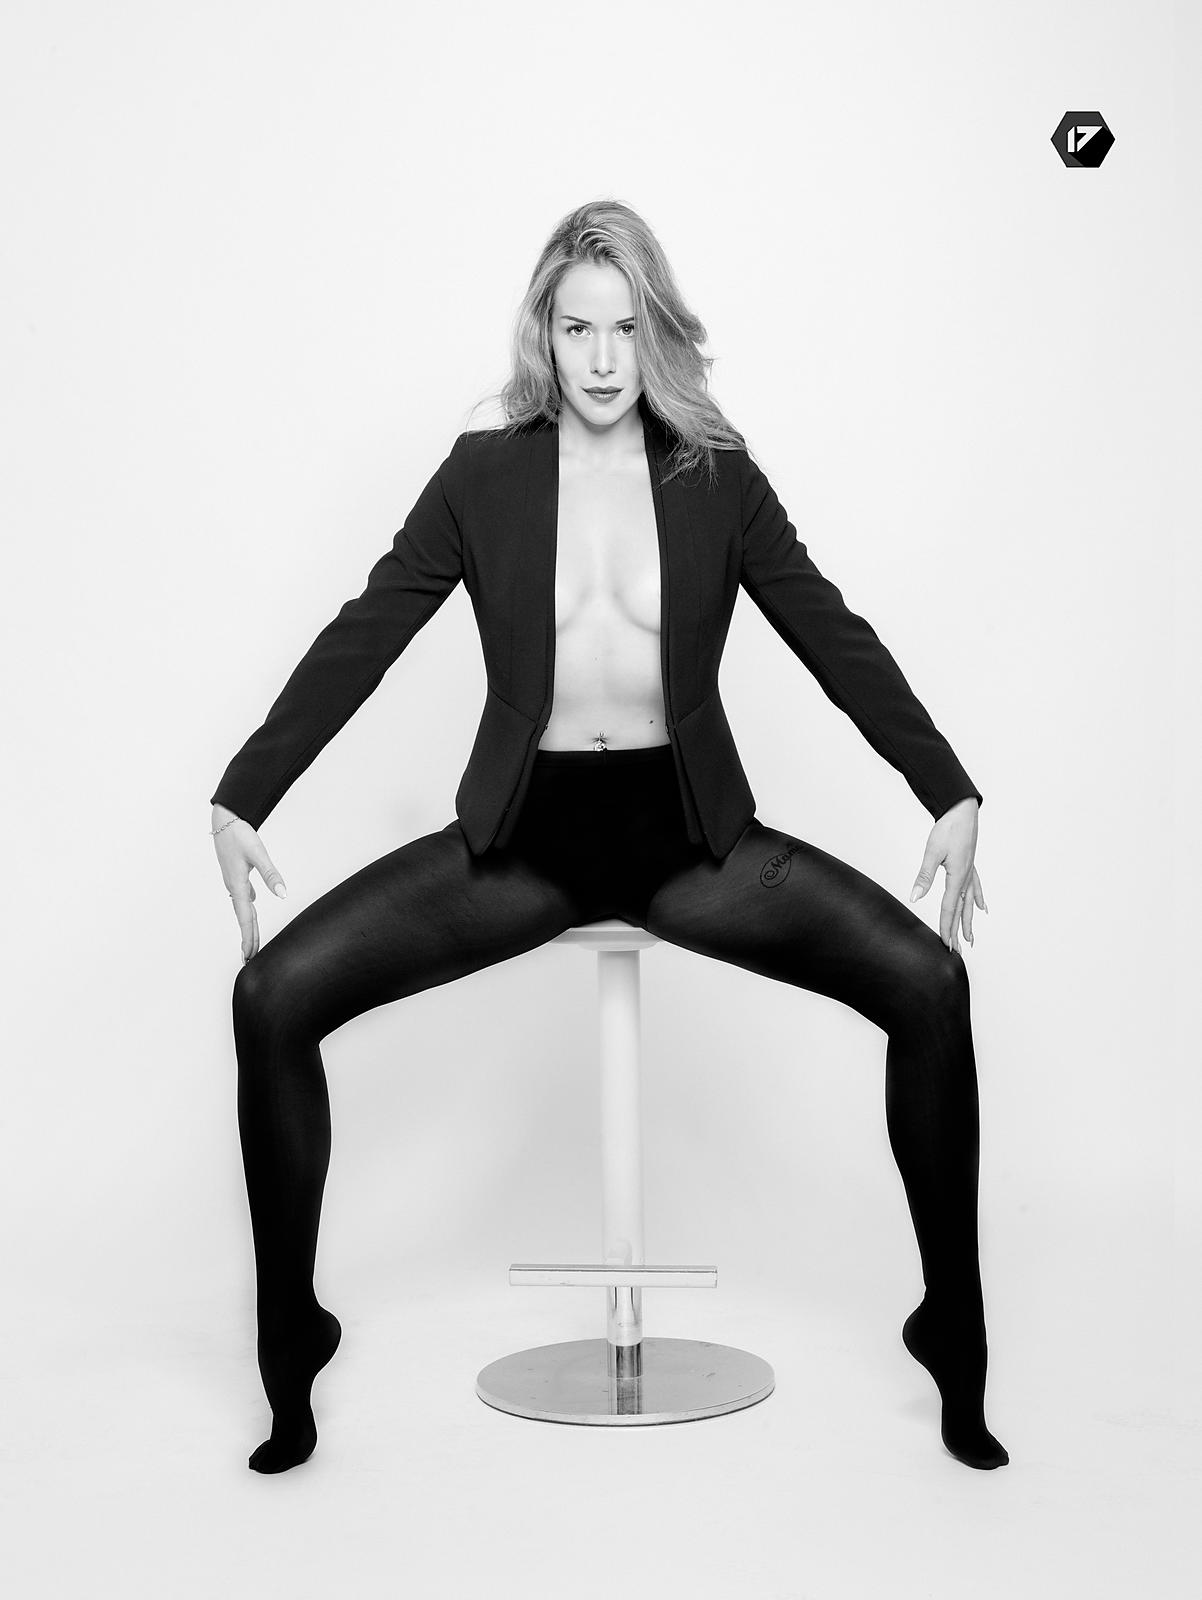 645XF, Agence, Agency, Black and White, Black Jacket, Blond, Blond hair, Blonde, chair, Clarisse Rnd, Glamour, Jacquet, Leah Hoffman, Model, Modèle, Noir et Blanc, Patrice Lemesle, Phase One 645XF, Photographe, seated, Sexy, siège, Studio17, Studio17.paris, Test, Torse nu caché, White background*? Phase One